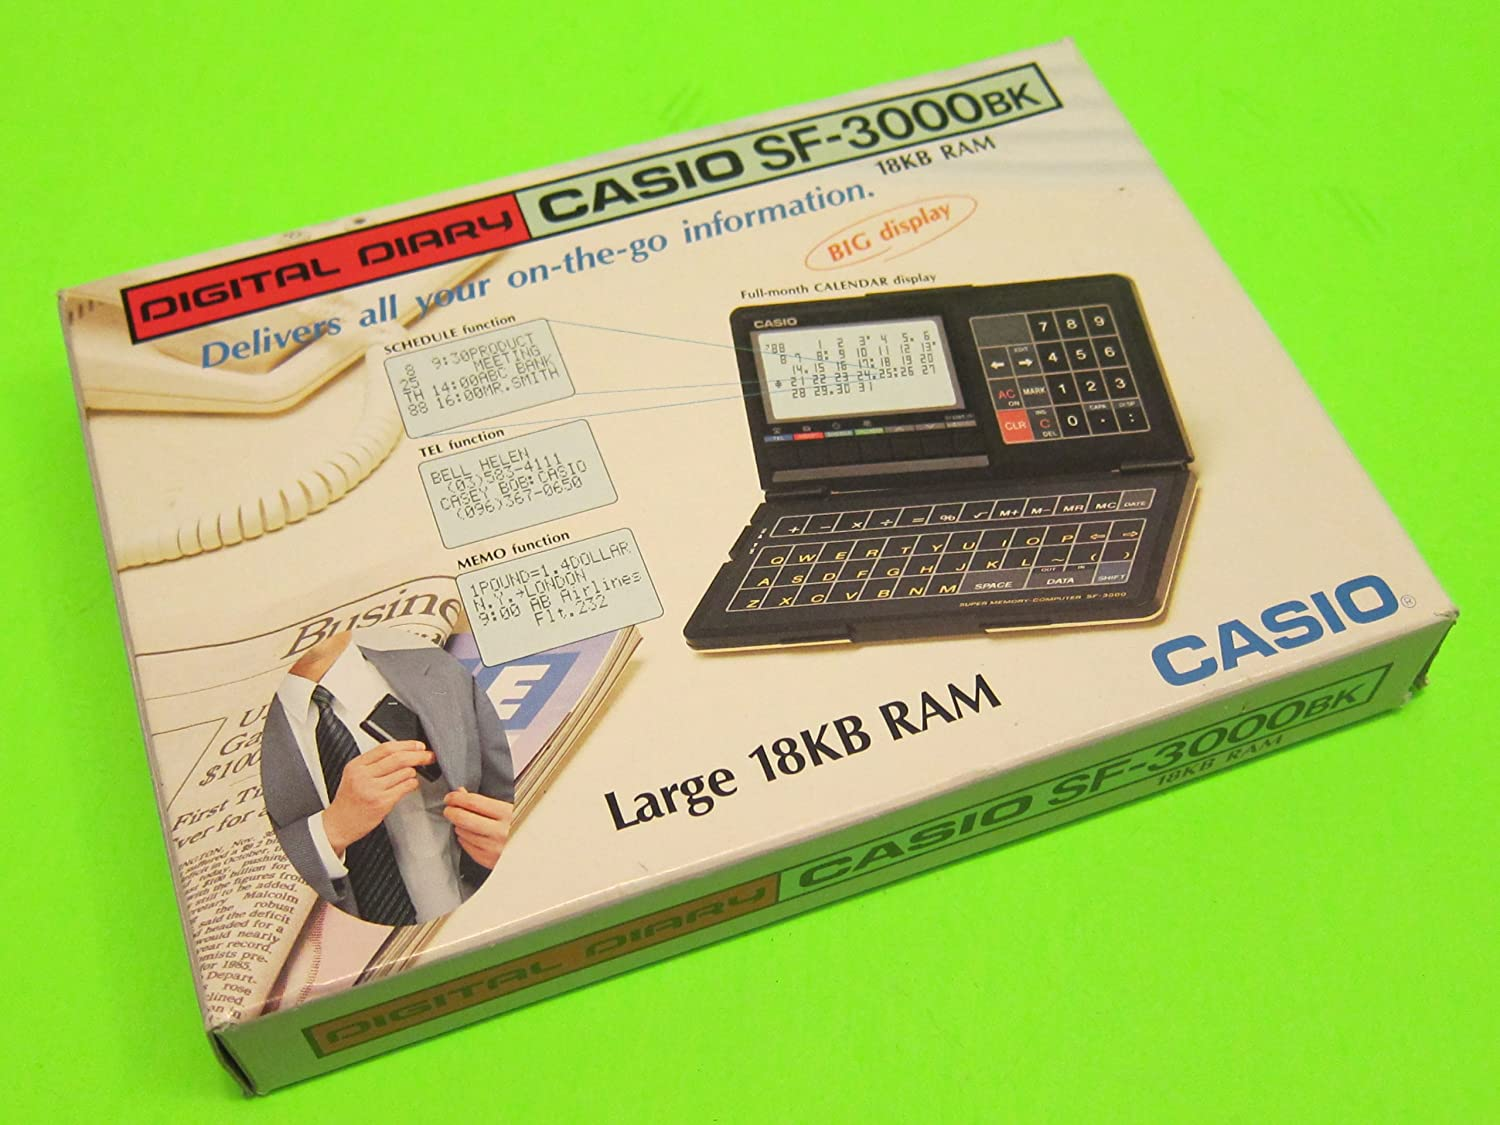 Vintage Casio SF-3000BK Digital Diary 18KB RAM SF-3000 SF3000